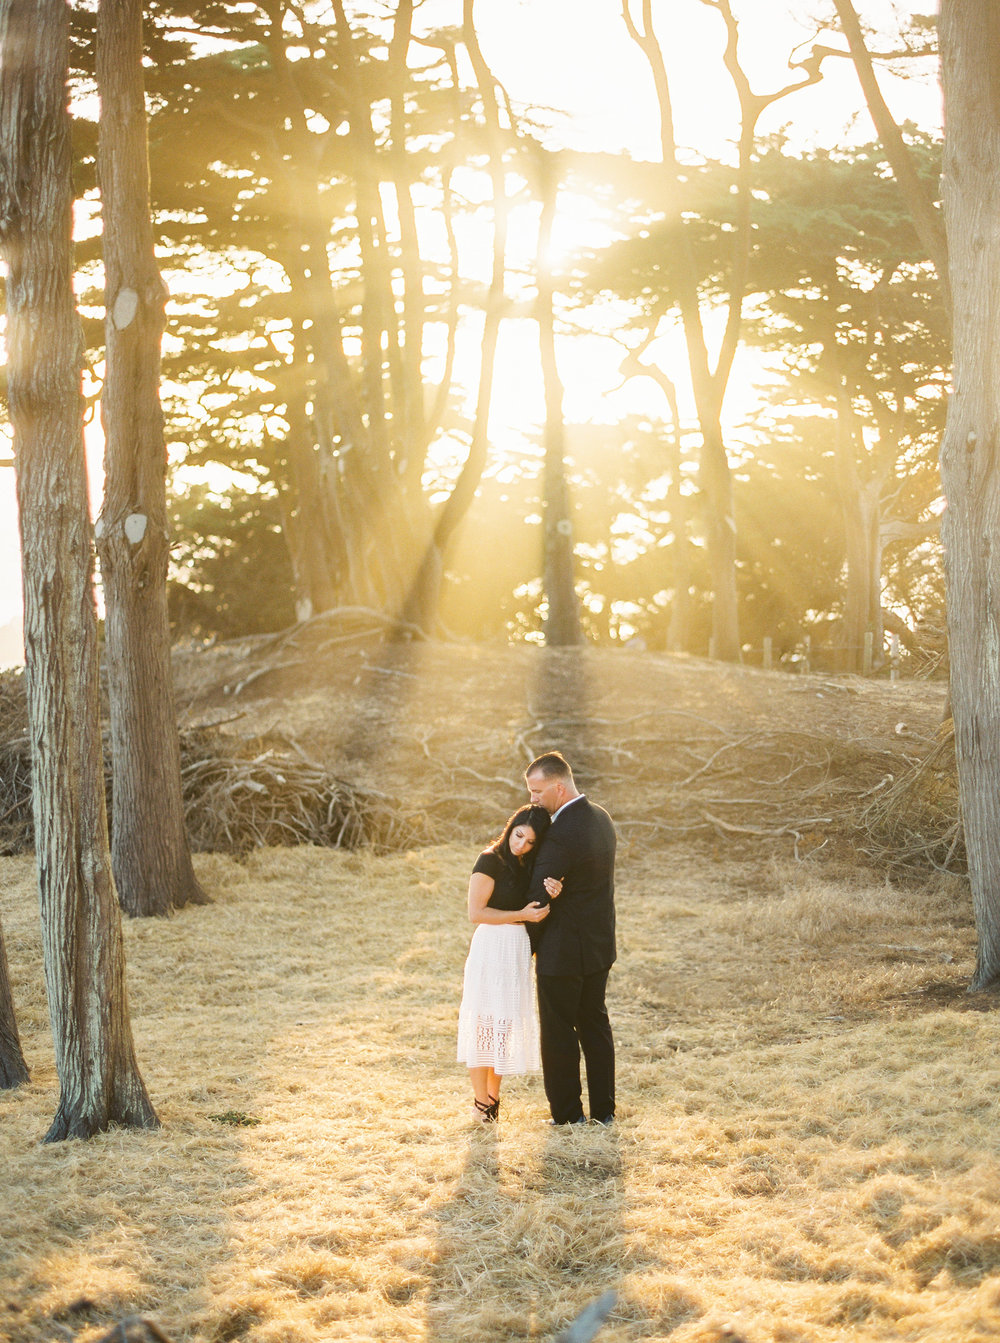 Suto-baths-engagement-photography-77.jpg